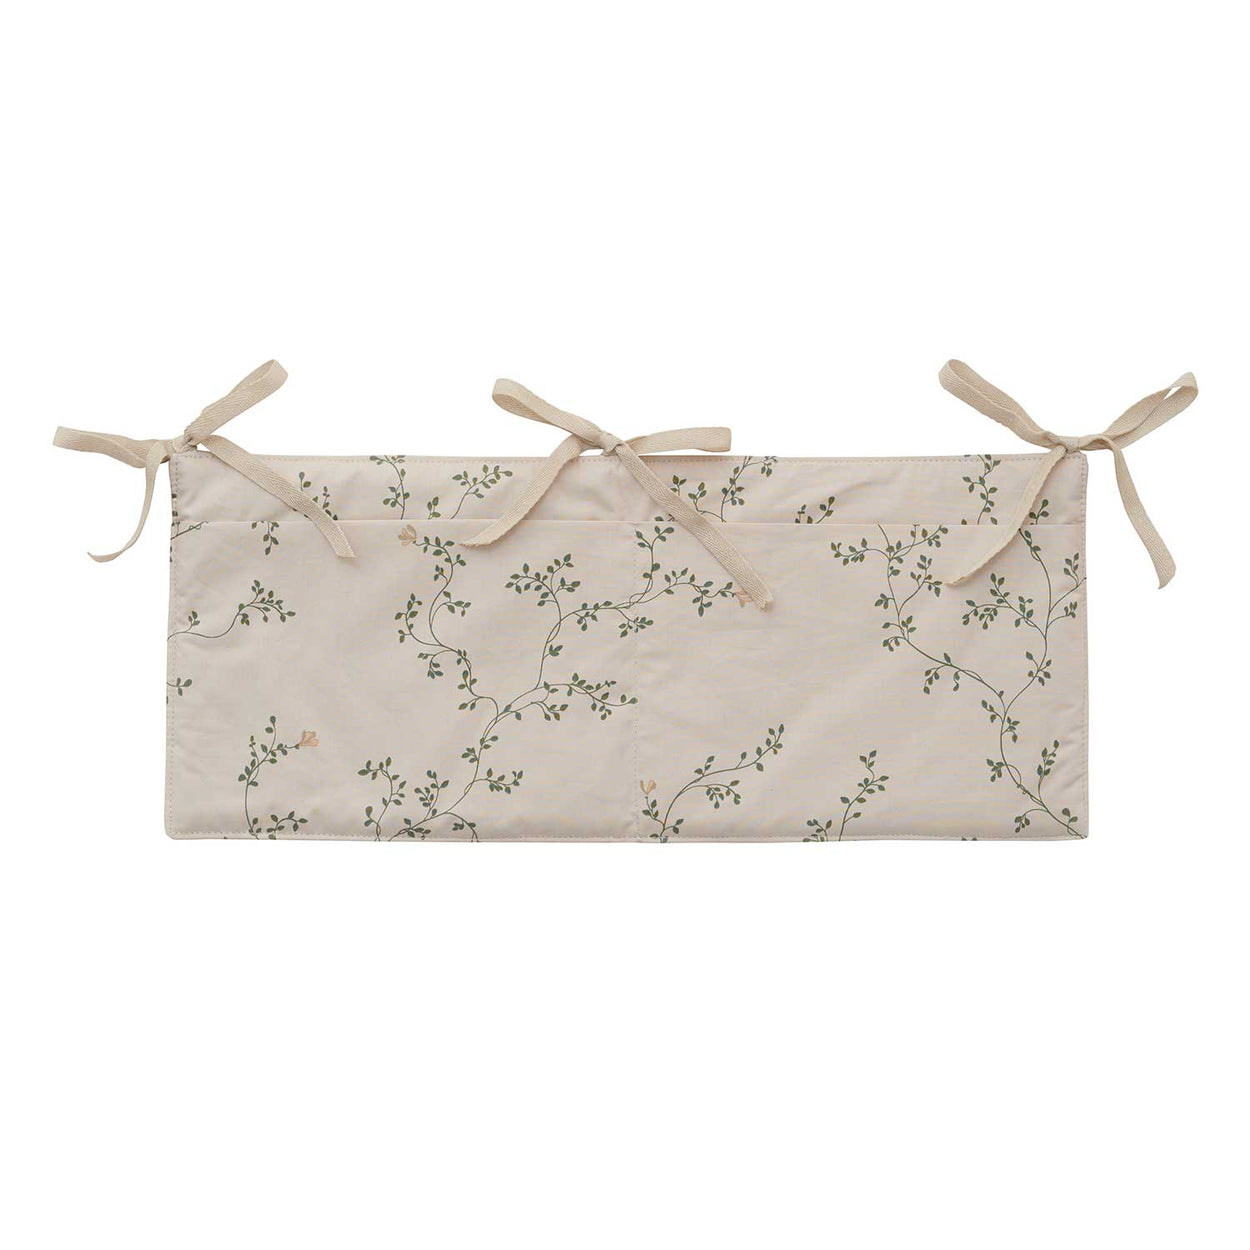 Garbo&Friends Botany Bed Pocket